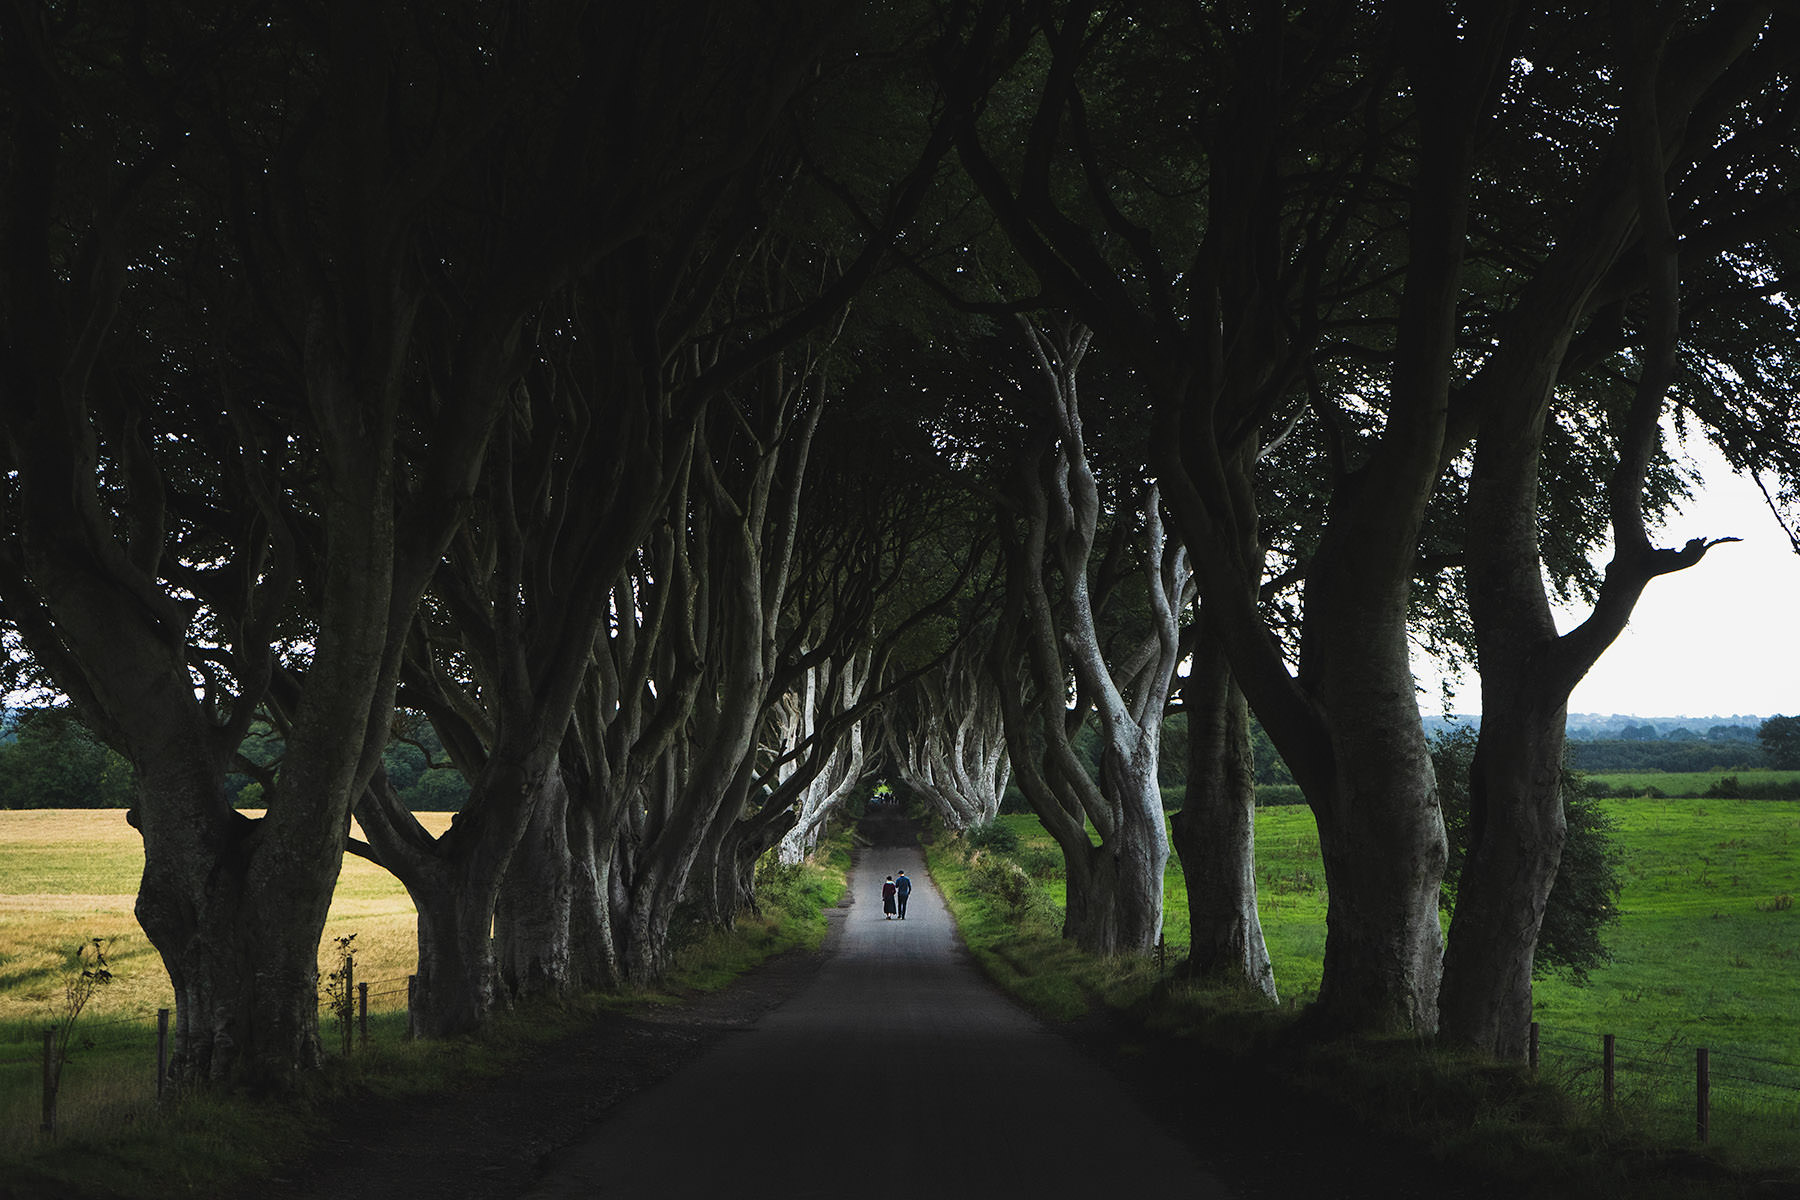 10-travel-ireland-dark-hedges-trees-road.jpg